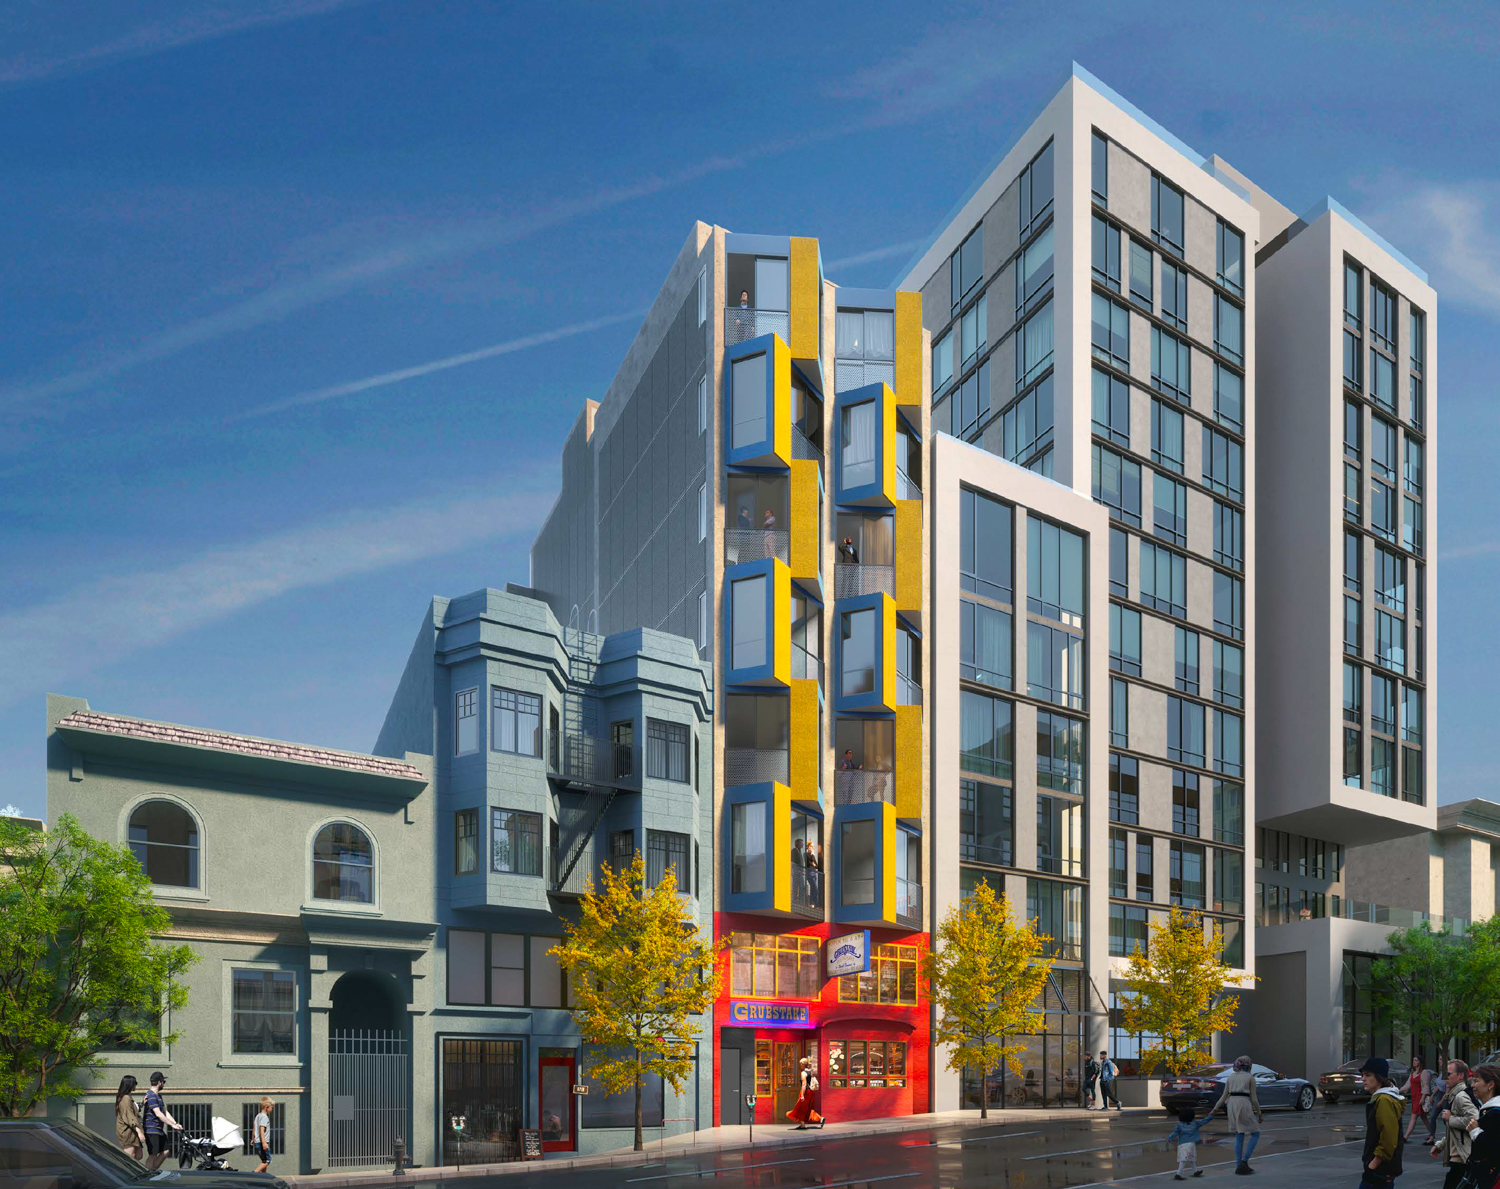 1525 Pine Street with the Grubstake facade at ground-level, rendering by Kerman Morris Architects